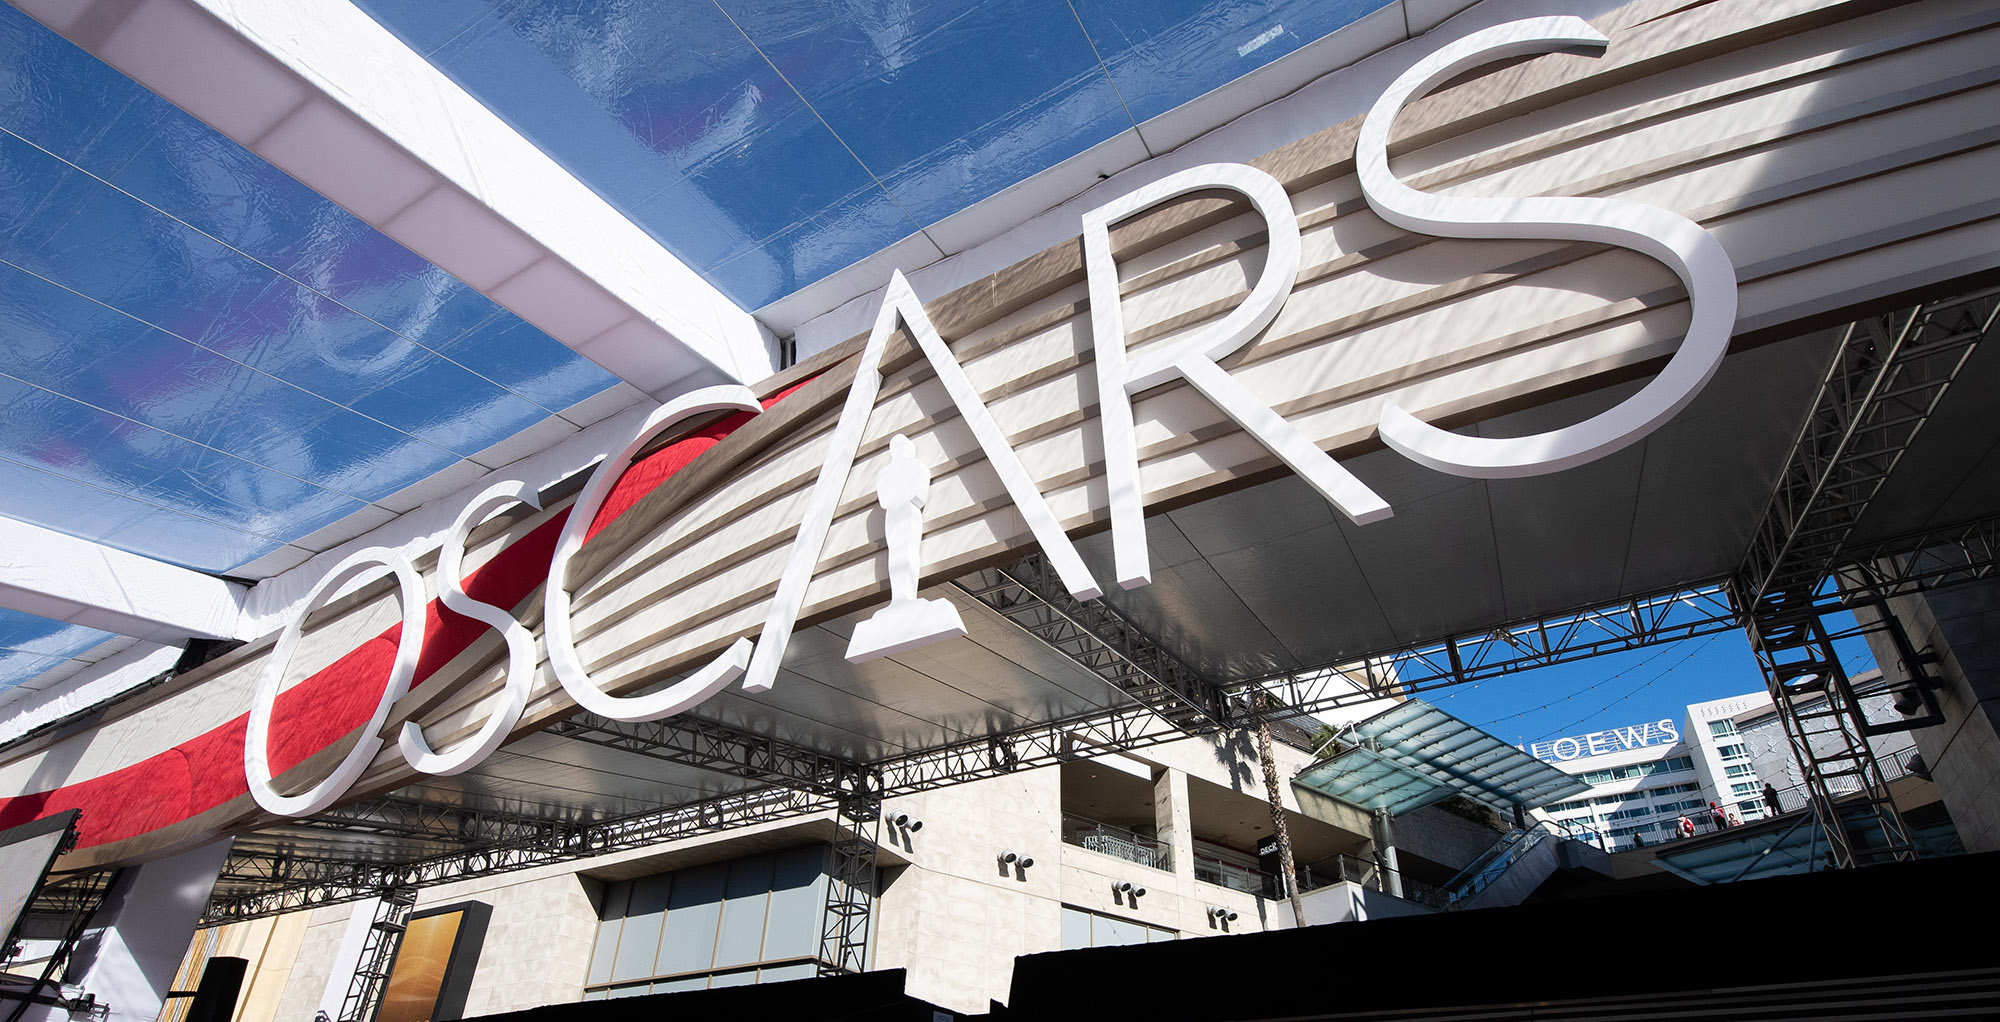 Preparations continue on Saturday, February 23, 2019 for The Oscars® which will be presented on Sunday, February 24, 2019, at the Dolby Theatre® in Hollywood, CA and televised live by the ABC Television Network.